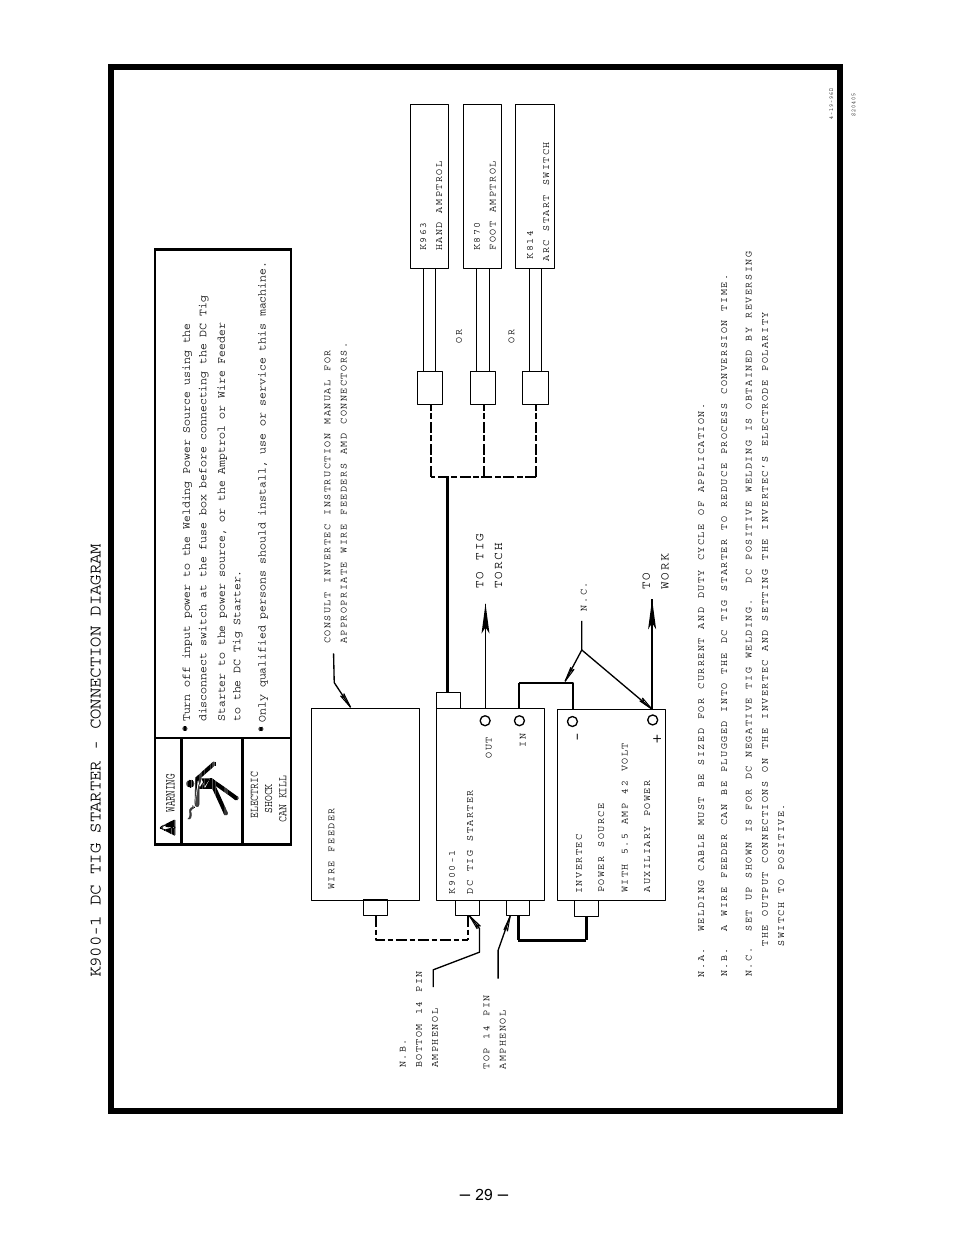 medium resolution of k900 1 dc tig starter connection diagram warning lincoln electric invertec im526 b user manual page 29 40